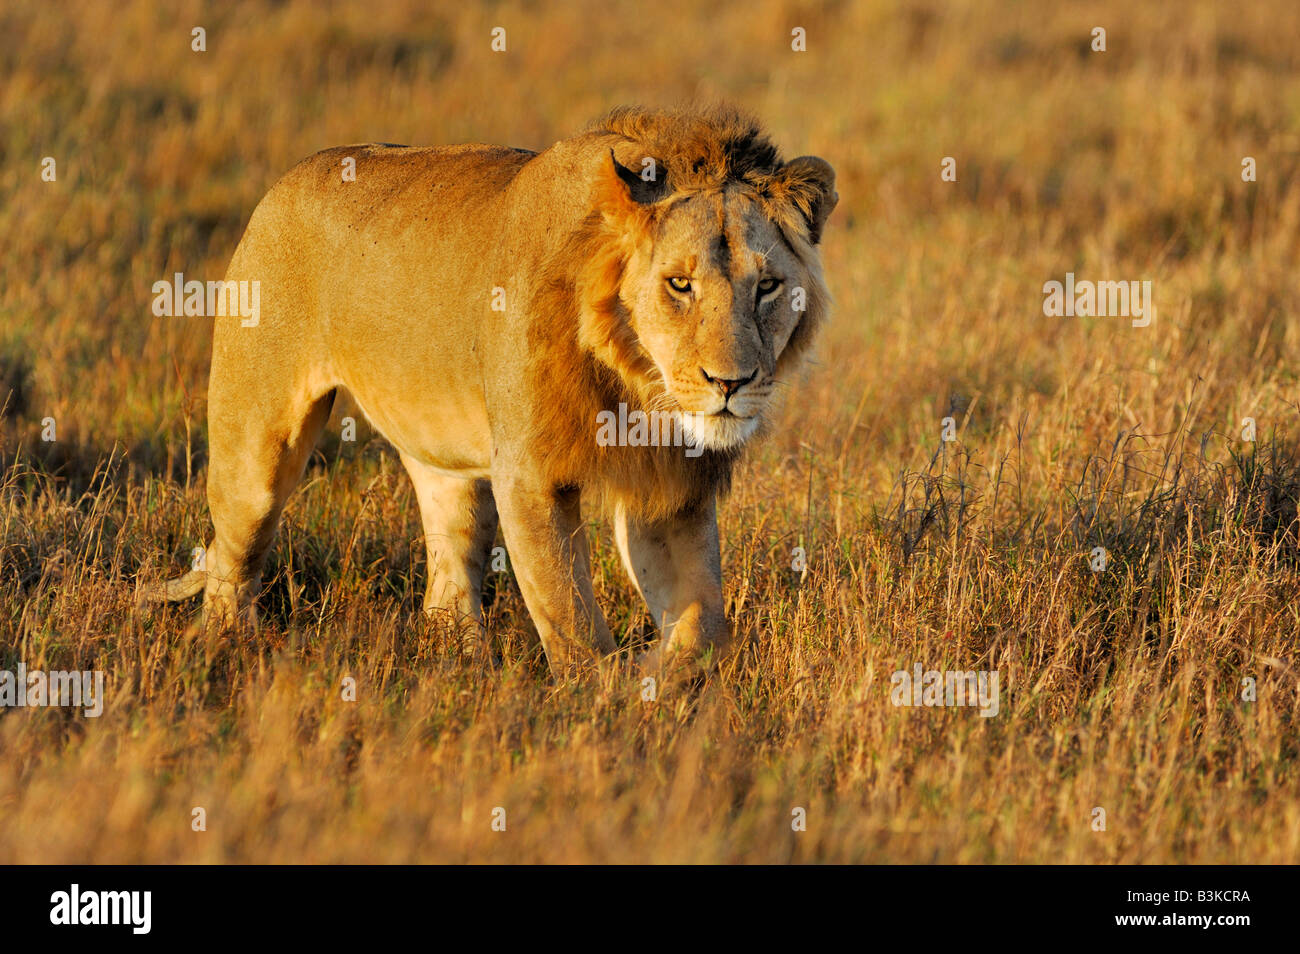 L'African Lion Panthera leo homme Masai Mara, Kenya, Afrique du Sud Photo Stock